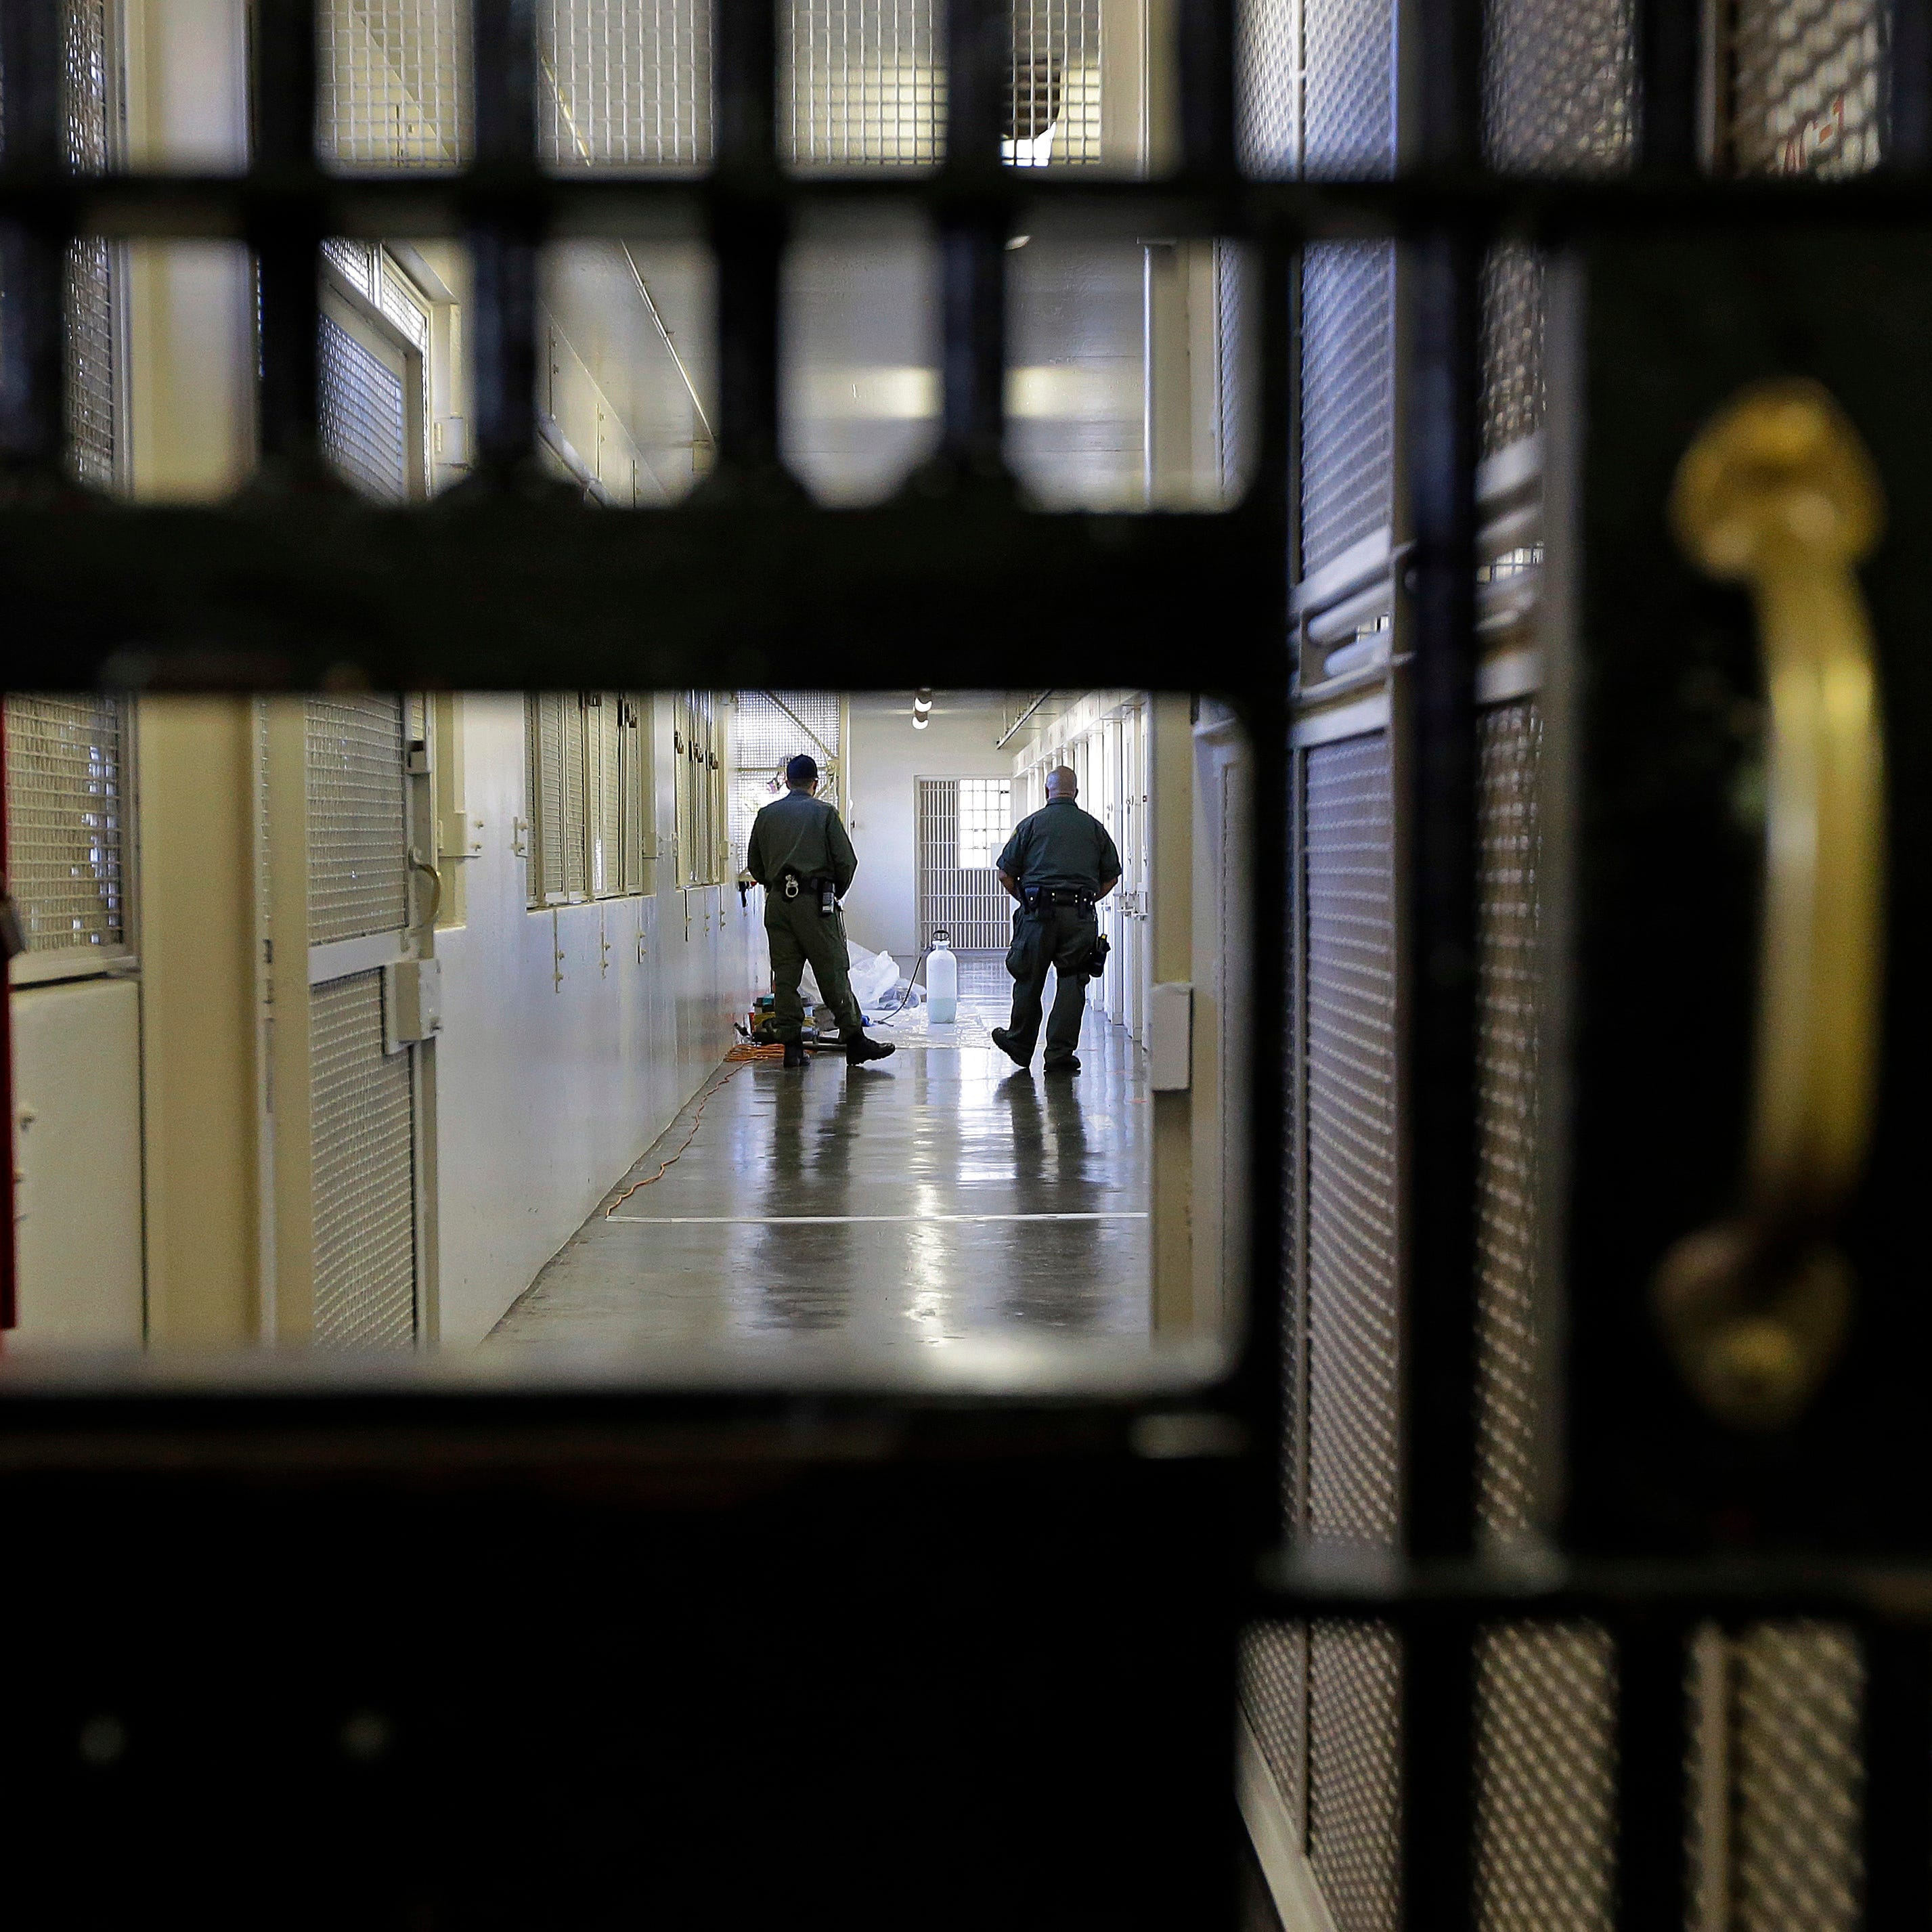 These are the 17 death row inmates convicted in Ventura County